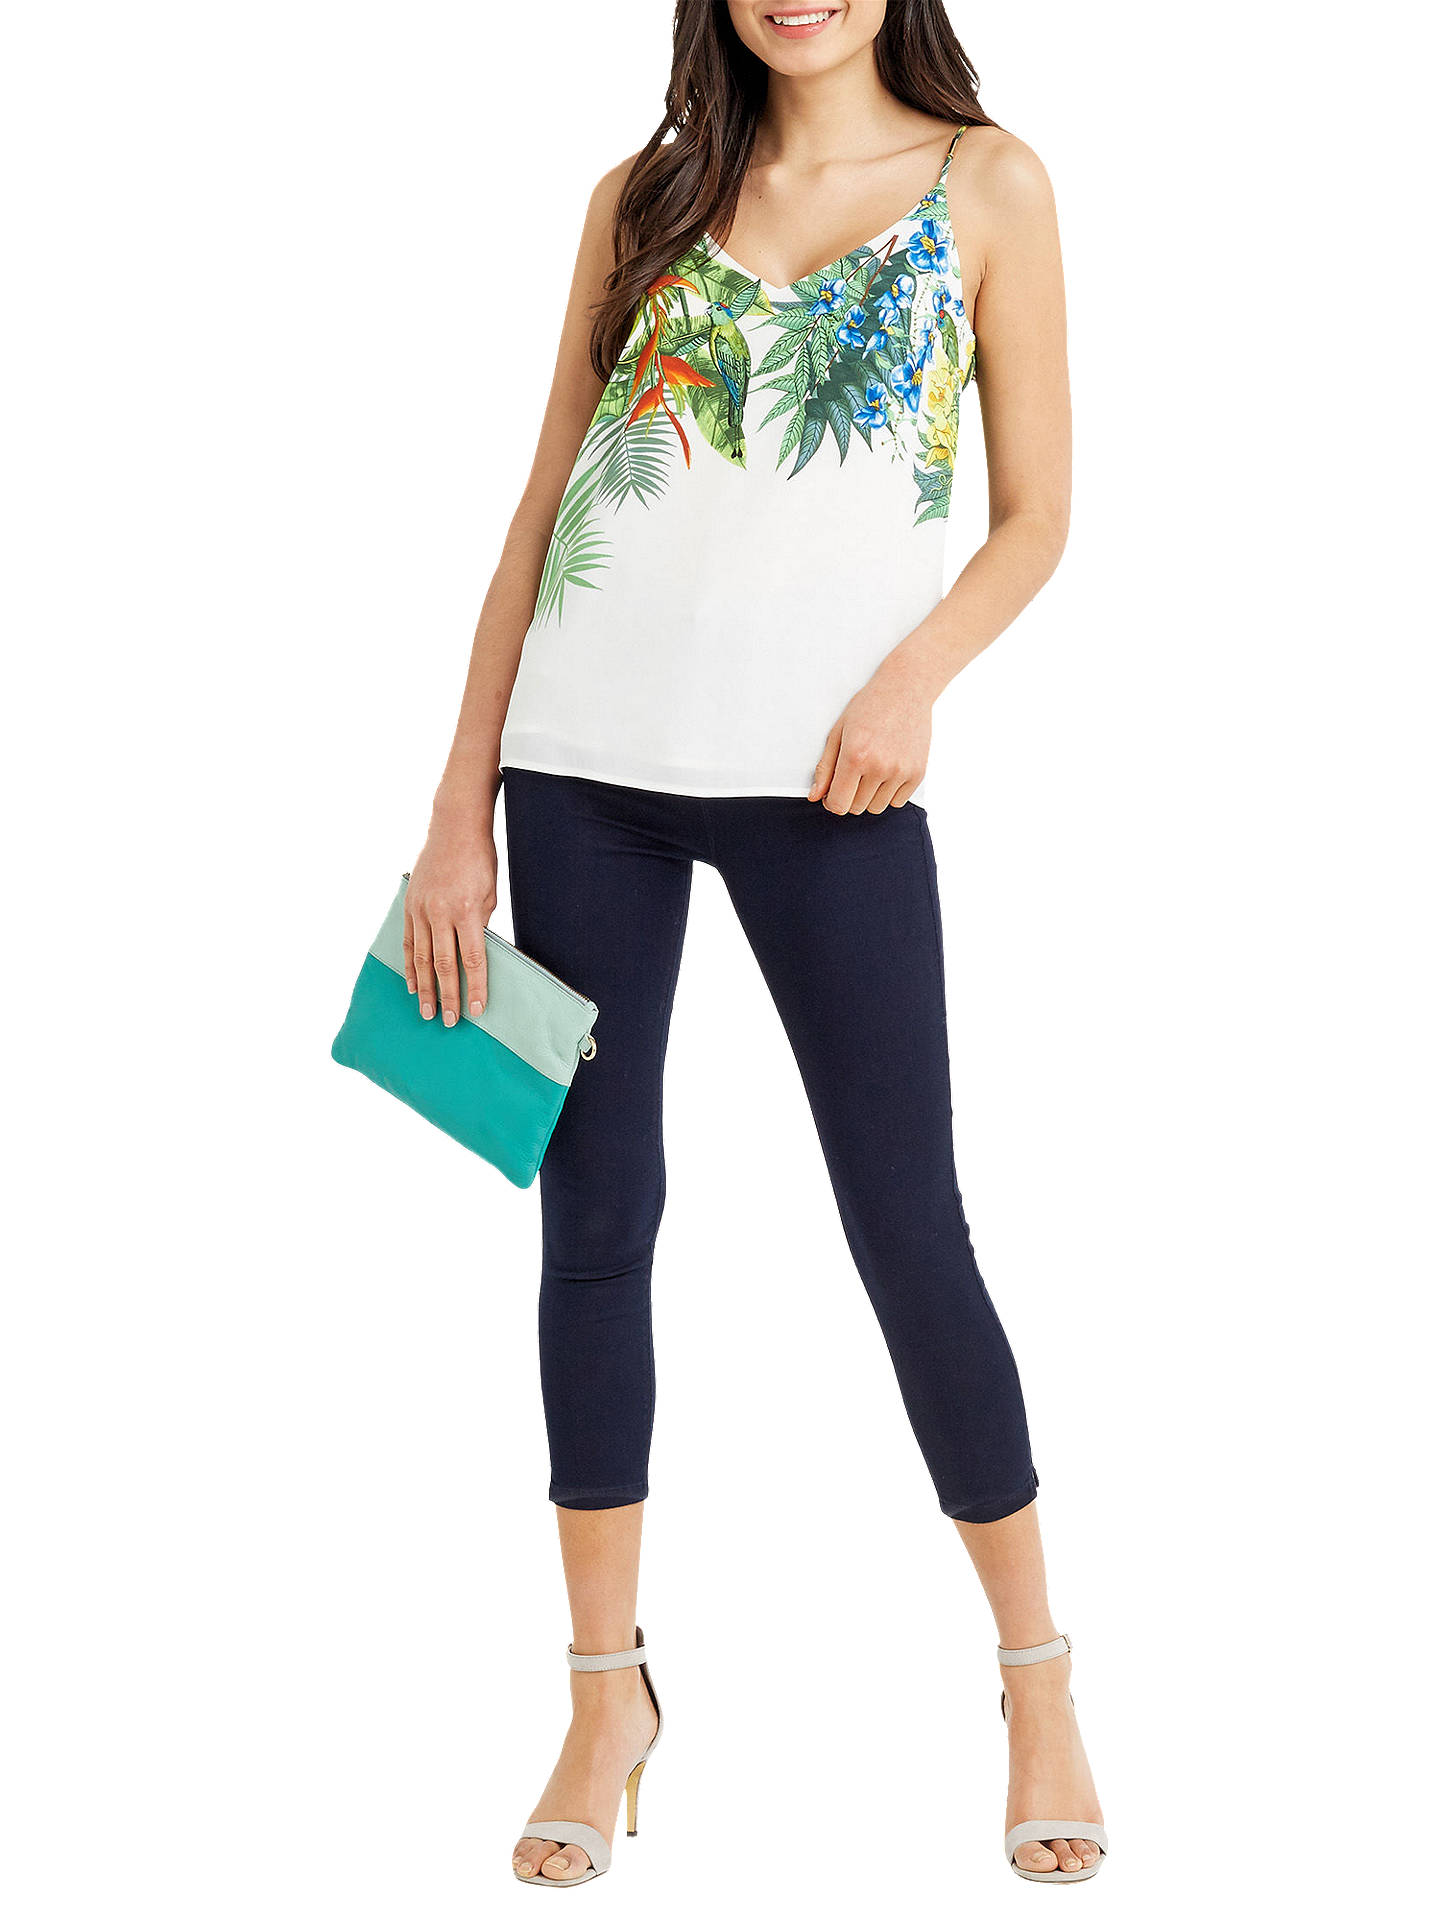 BuyOasis Tropical Placement Cami, Multi / Natural, Multi/Natural, 8 Online at johnlewis.com